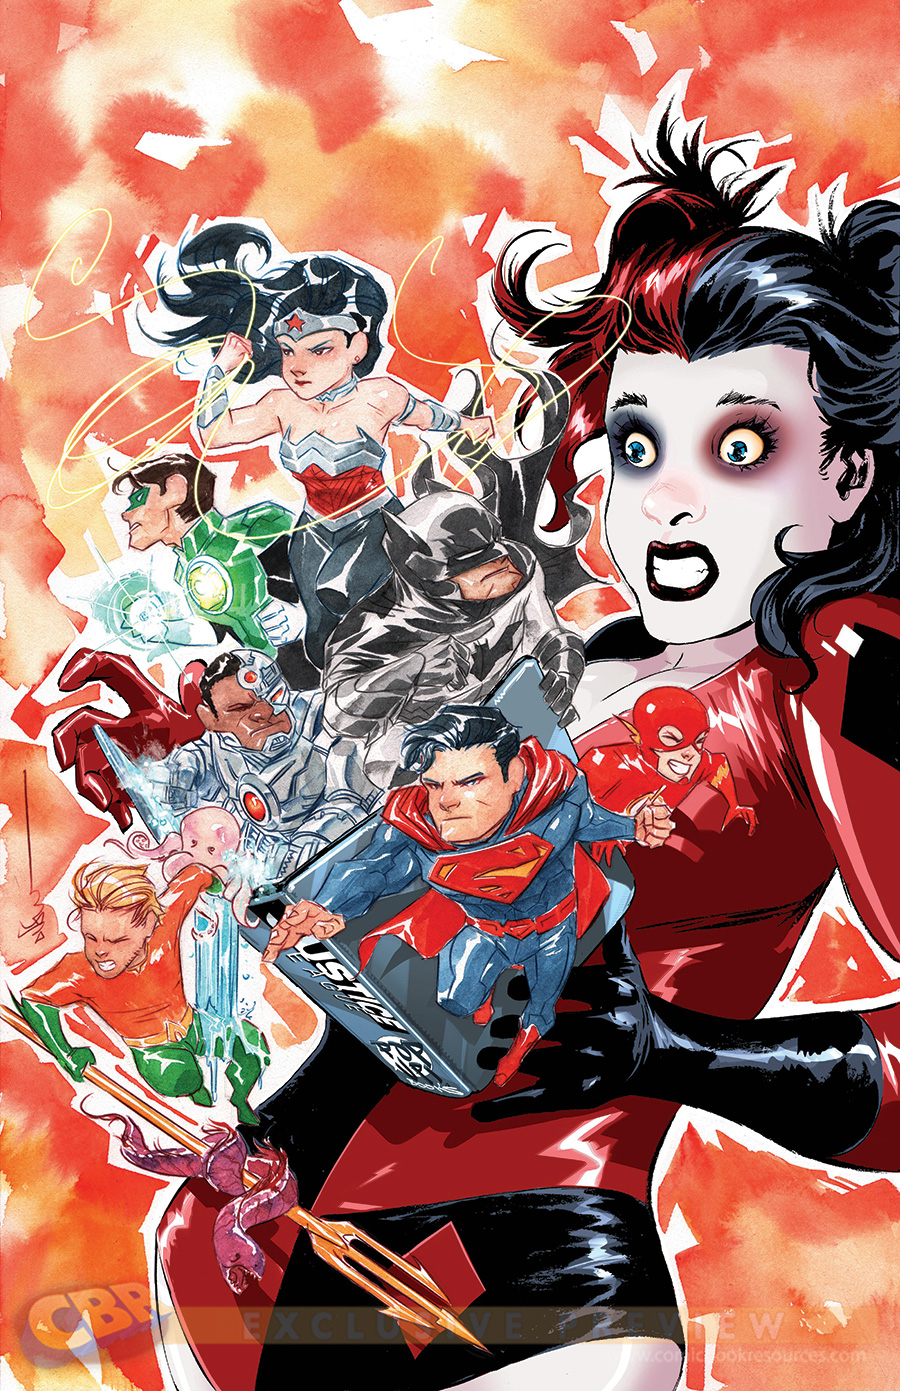 Justice League #39 by Dustin Nguyen & CV Painting